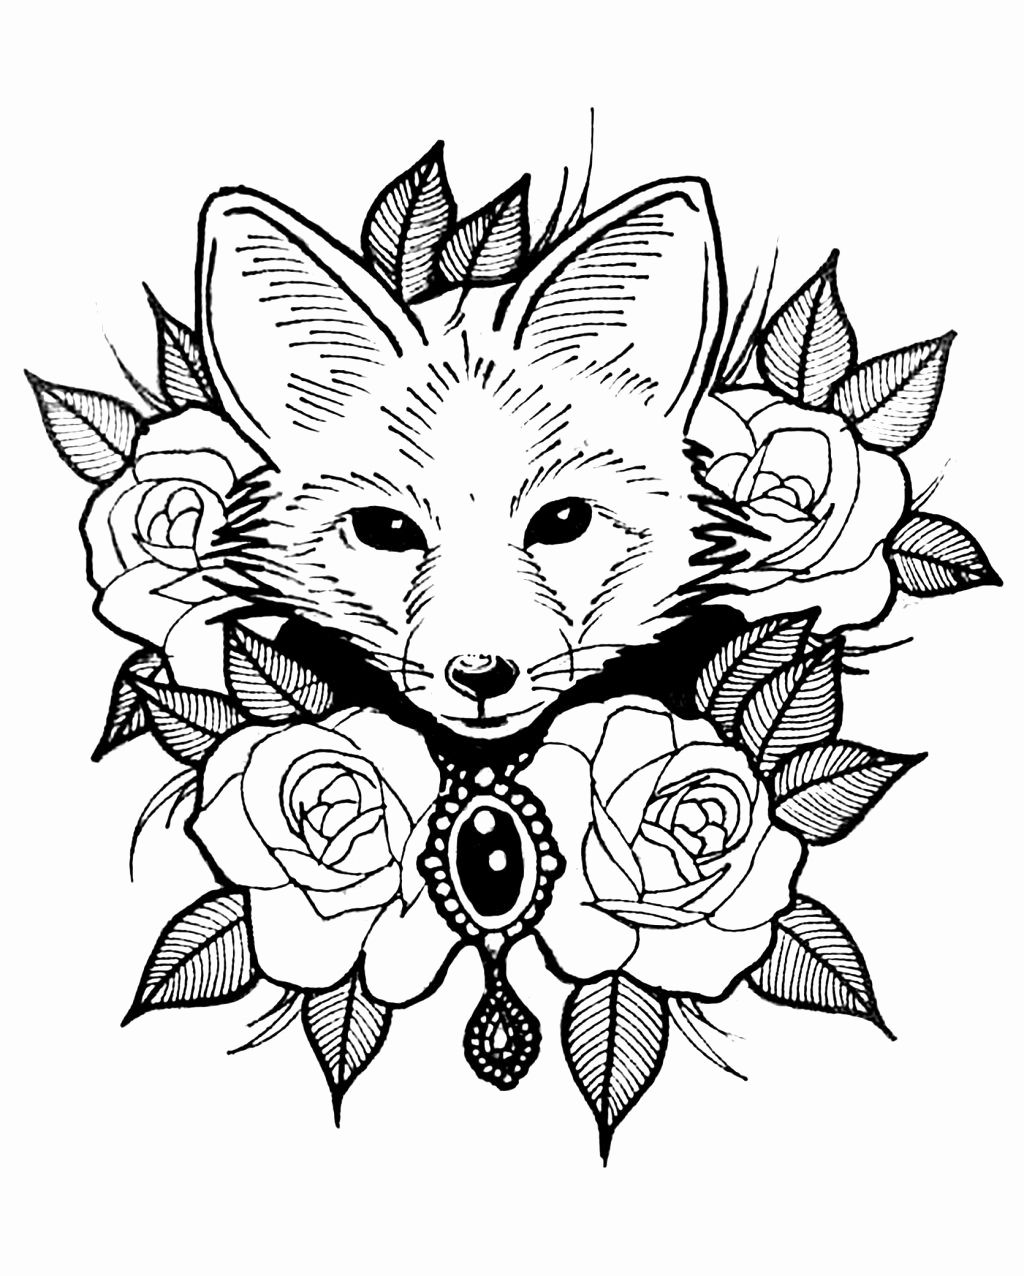 Animal Coloring Pages For Kids To Print Out Cute In 2020 Fox Coloring Page Zoo Animal Coloring Pages Animal Coloring Books